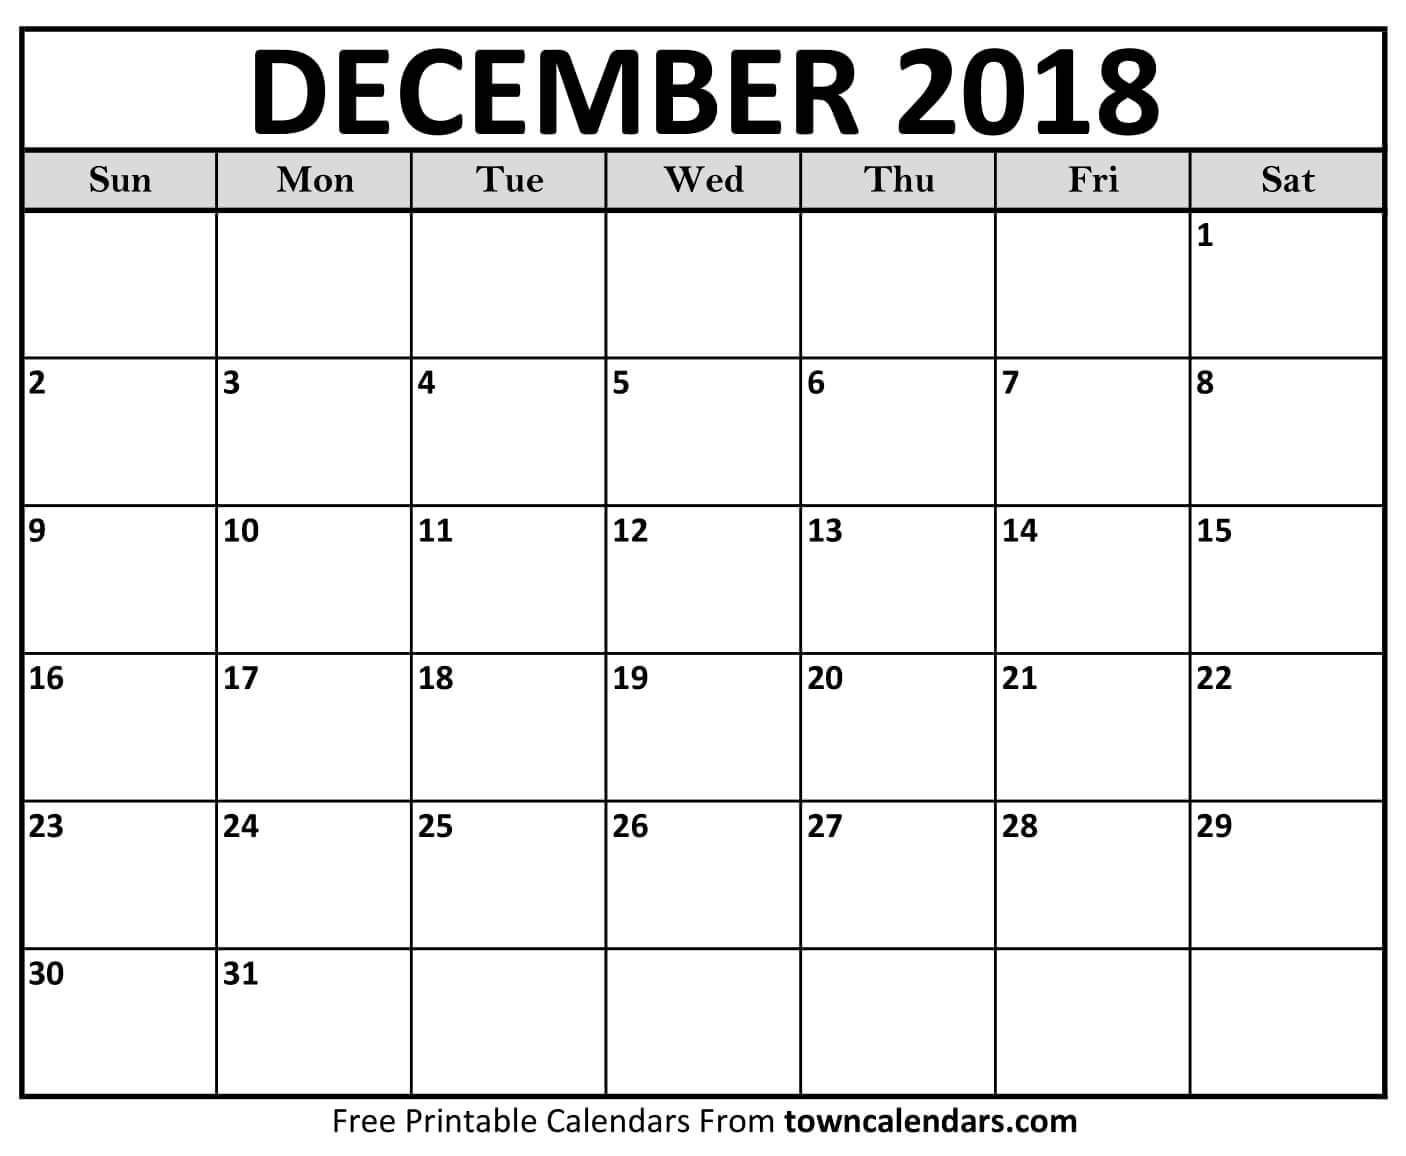 Monthly Calendar December 2018 Template Free Download throughout Blank Monthly Calendar Dec